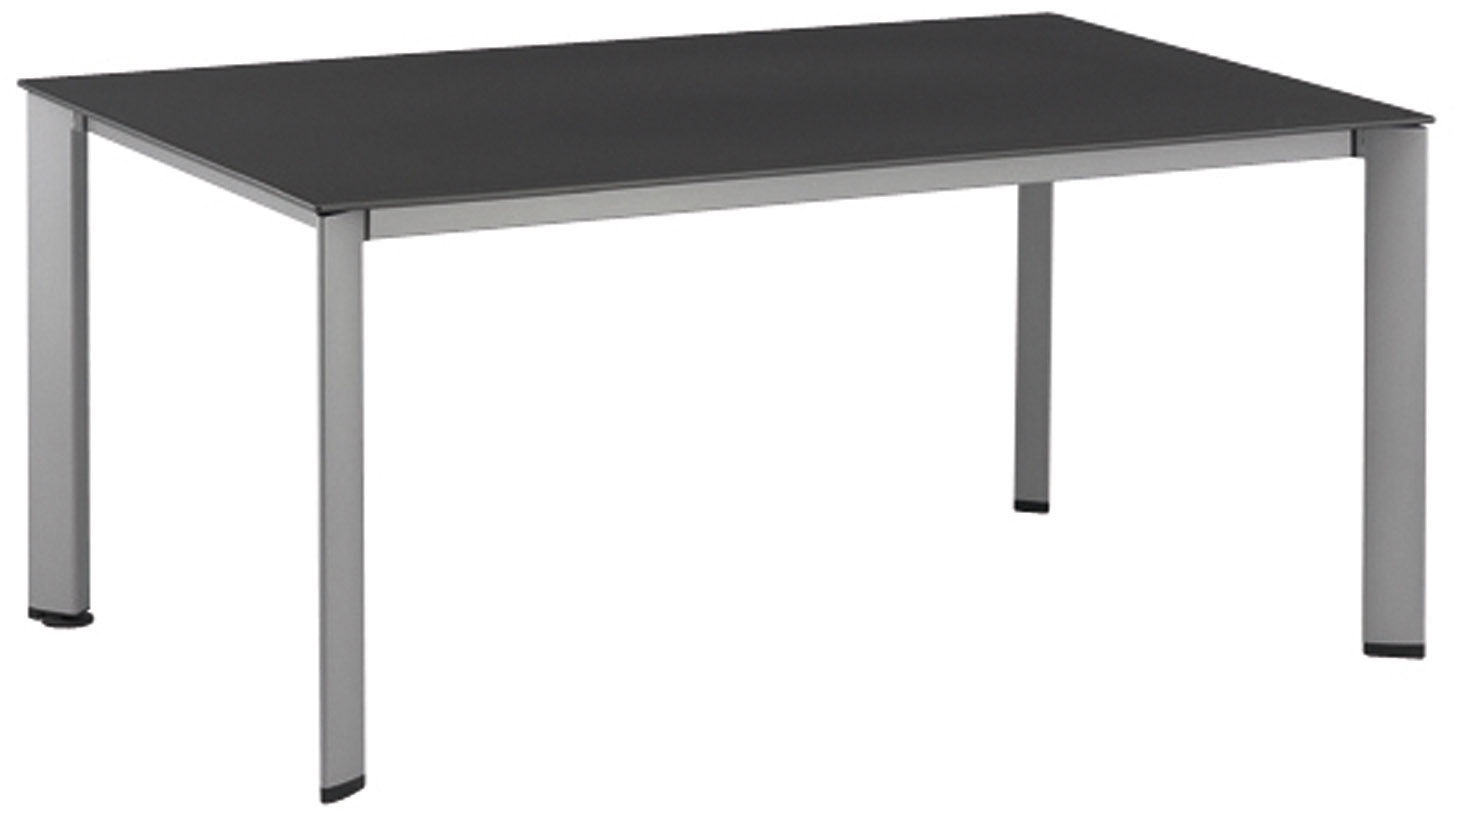 Table exterieur royal sofa id e de canap et meuble maison for Table exterieur 3 metres